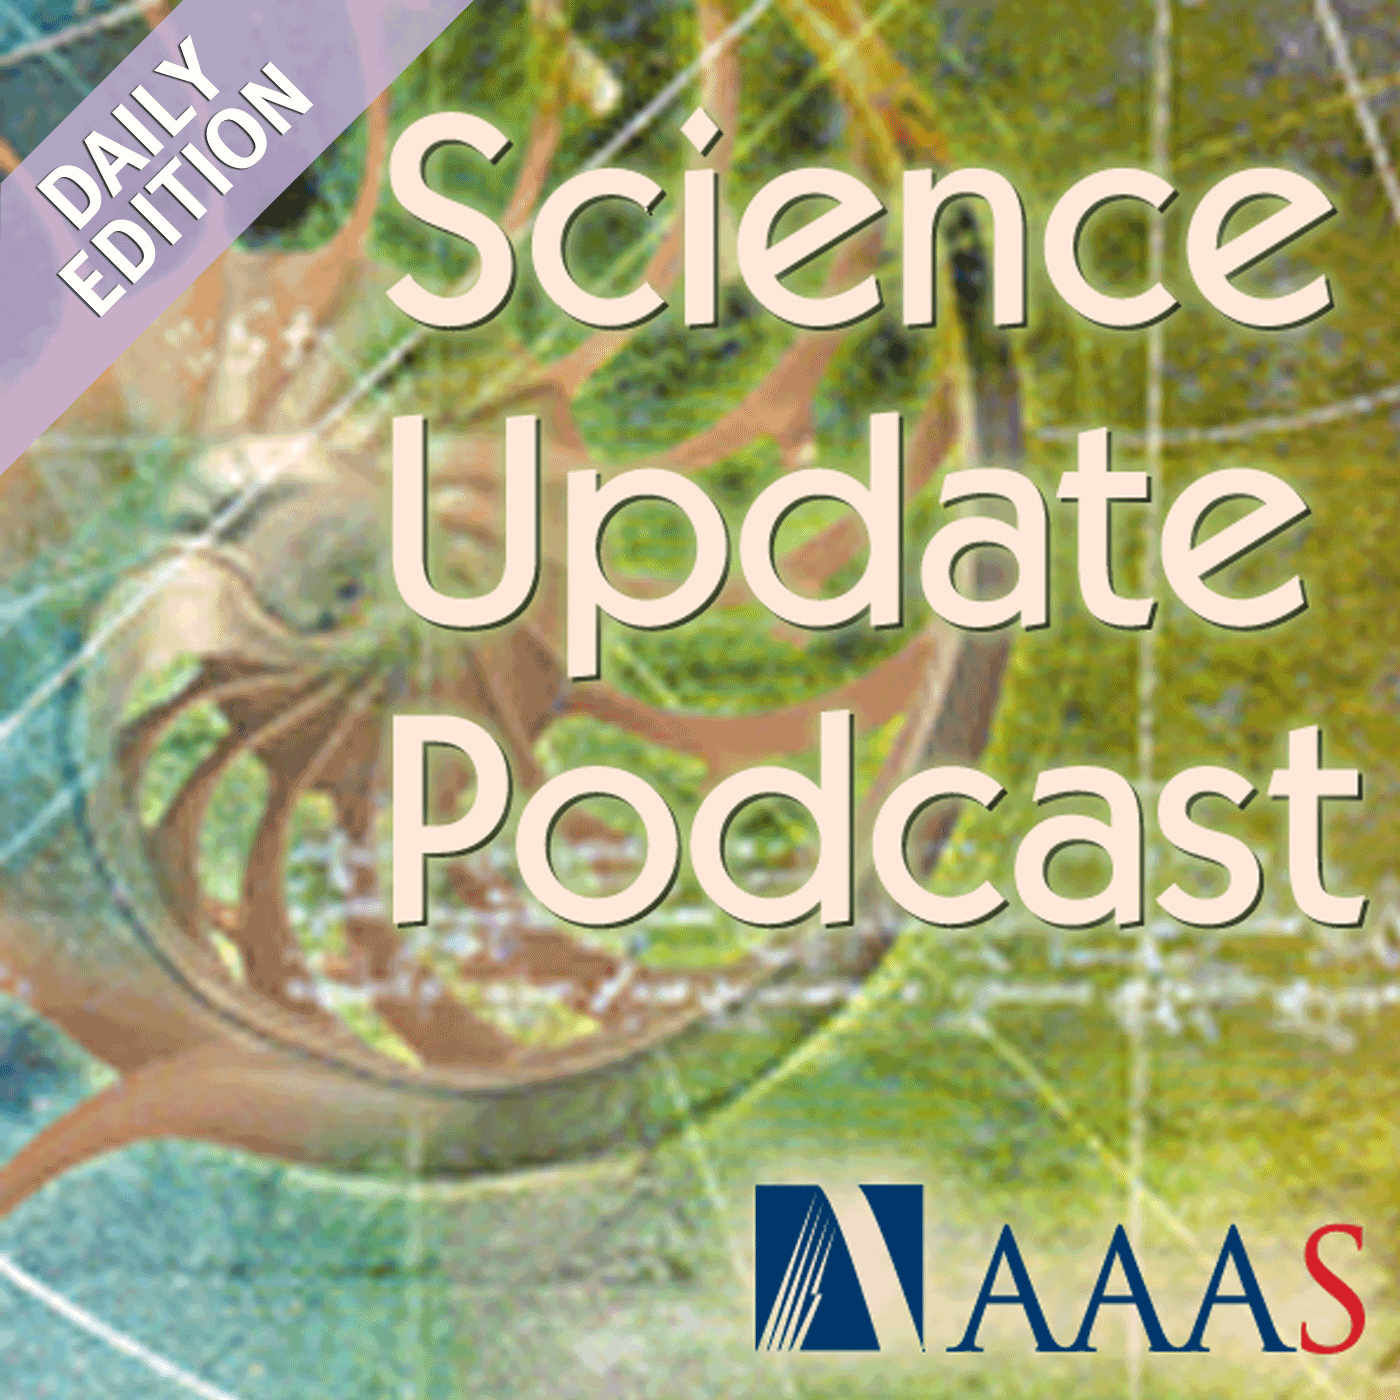 Science Update Podcast – Daily Edition